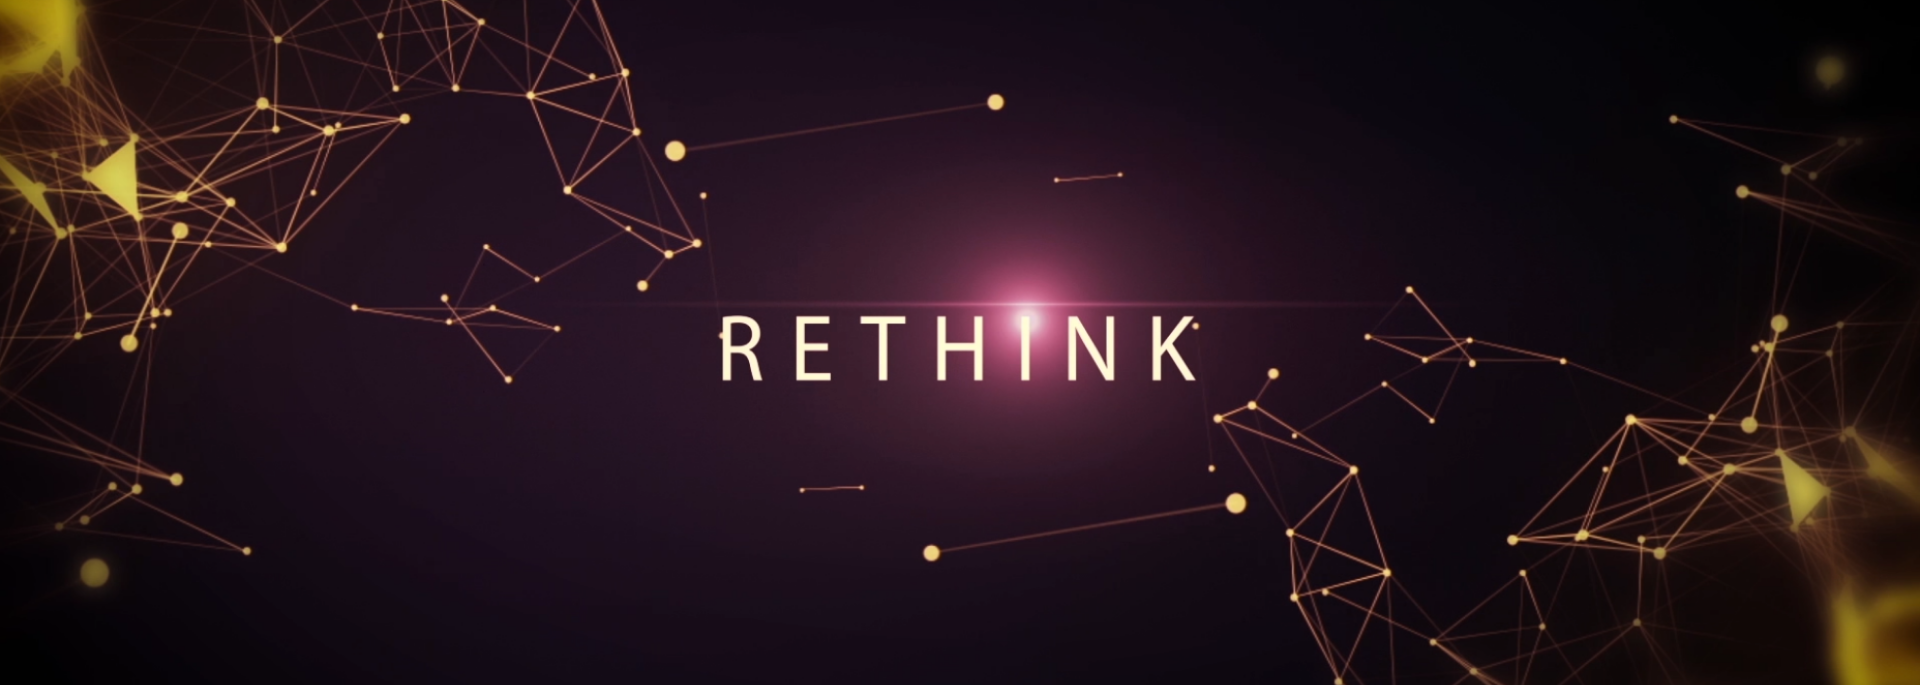 #RETHINK channel